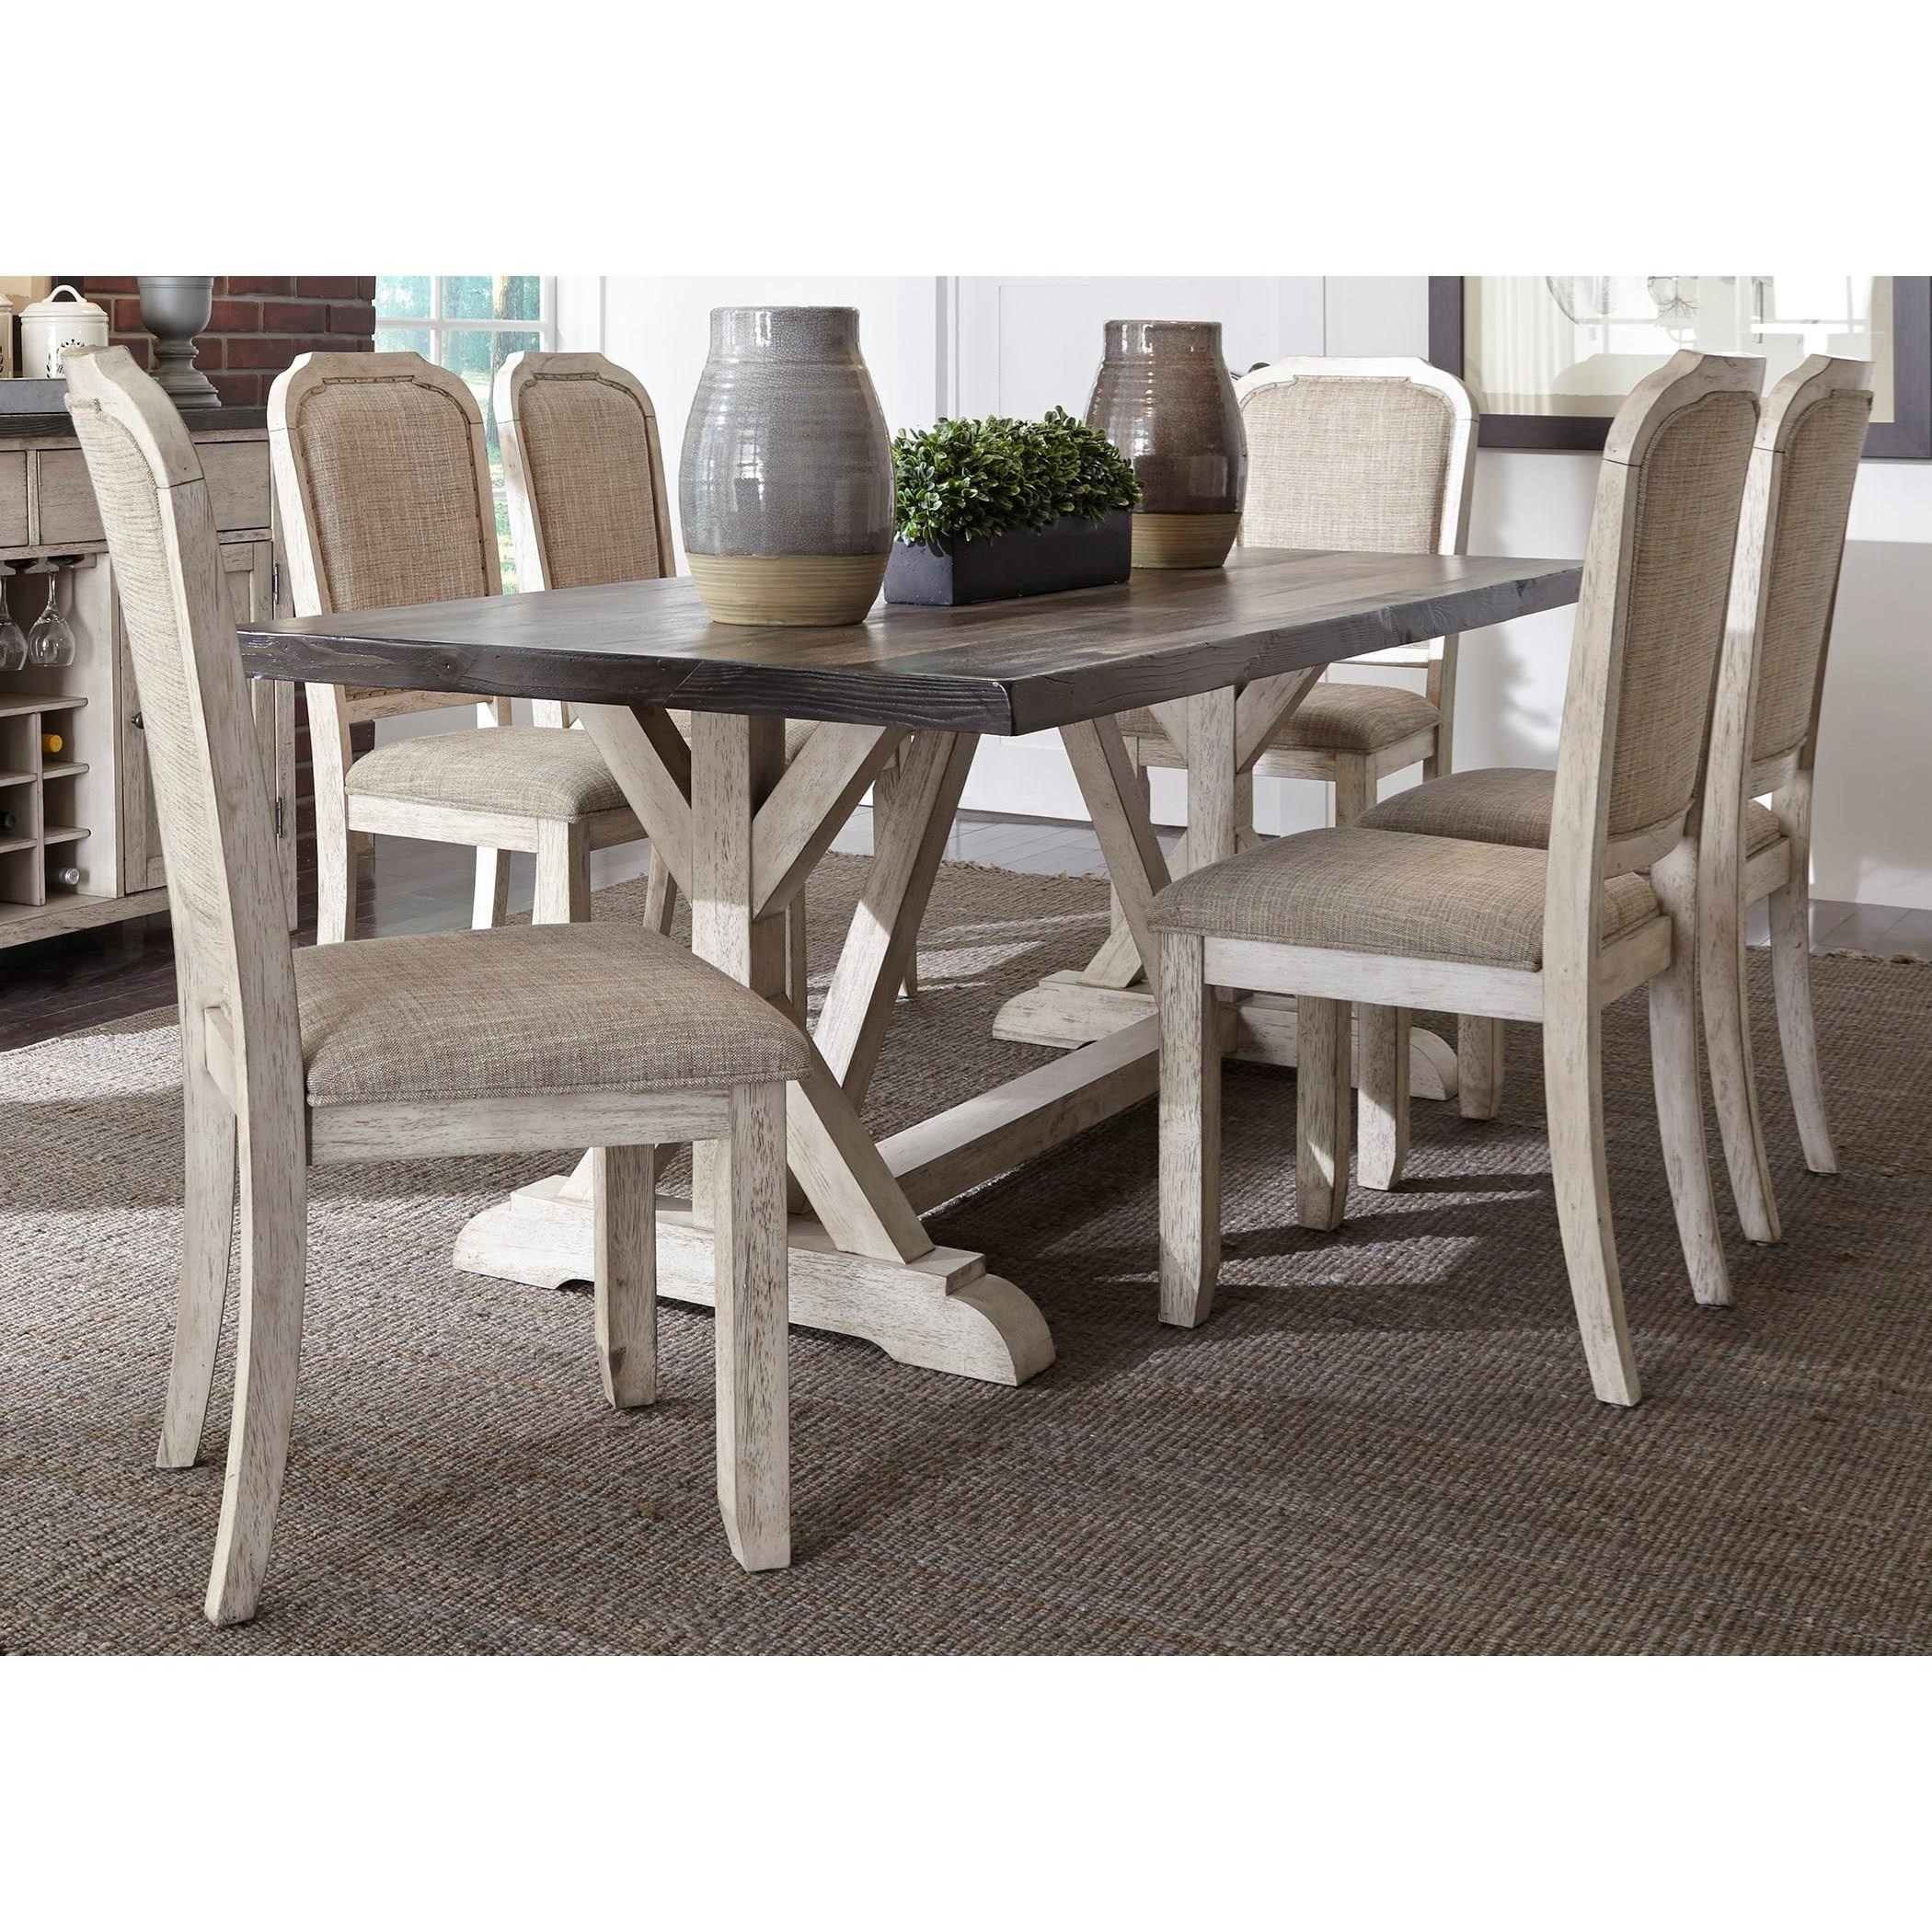 Willowrun 7-Piece Trestle Table Set  by Libby at Walker's Furniture